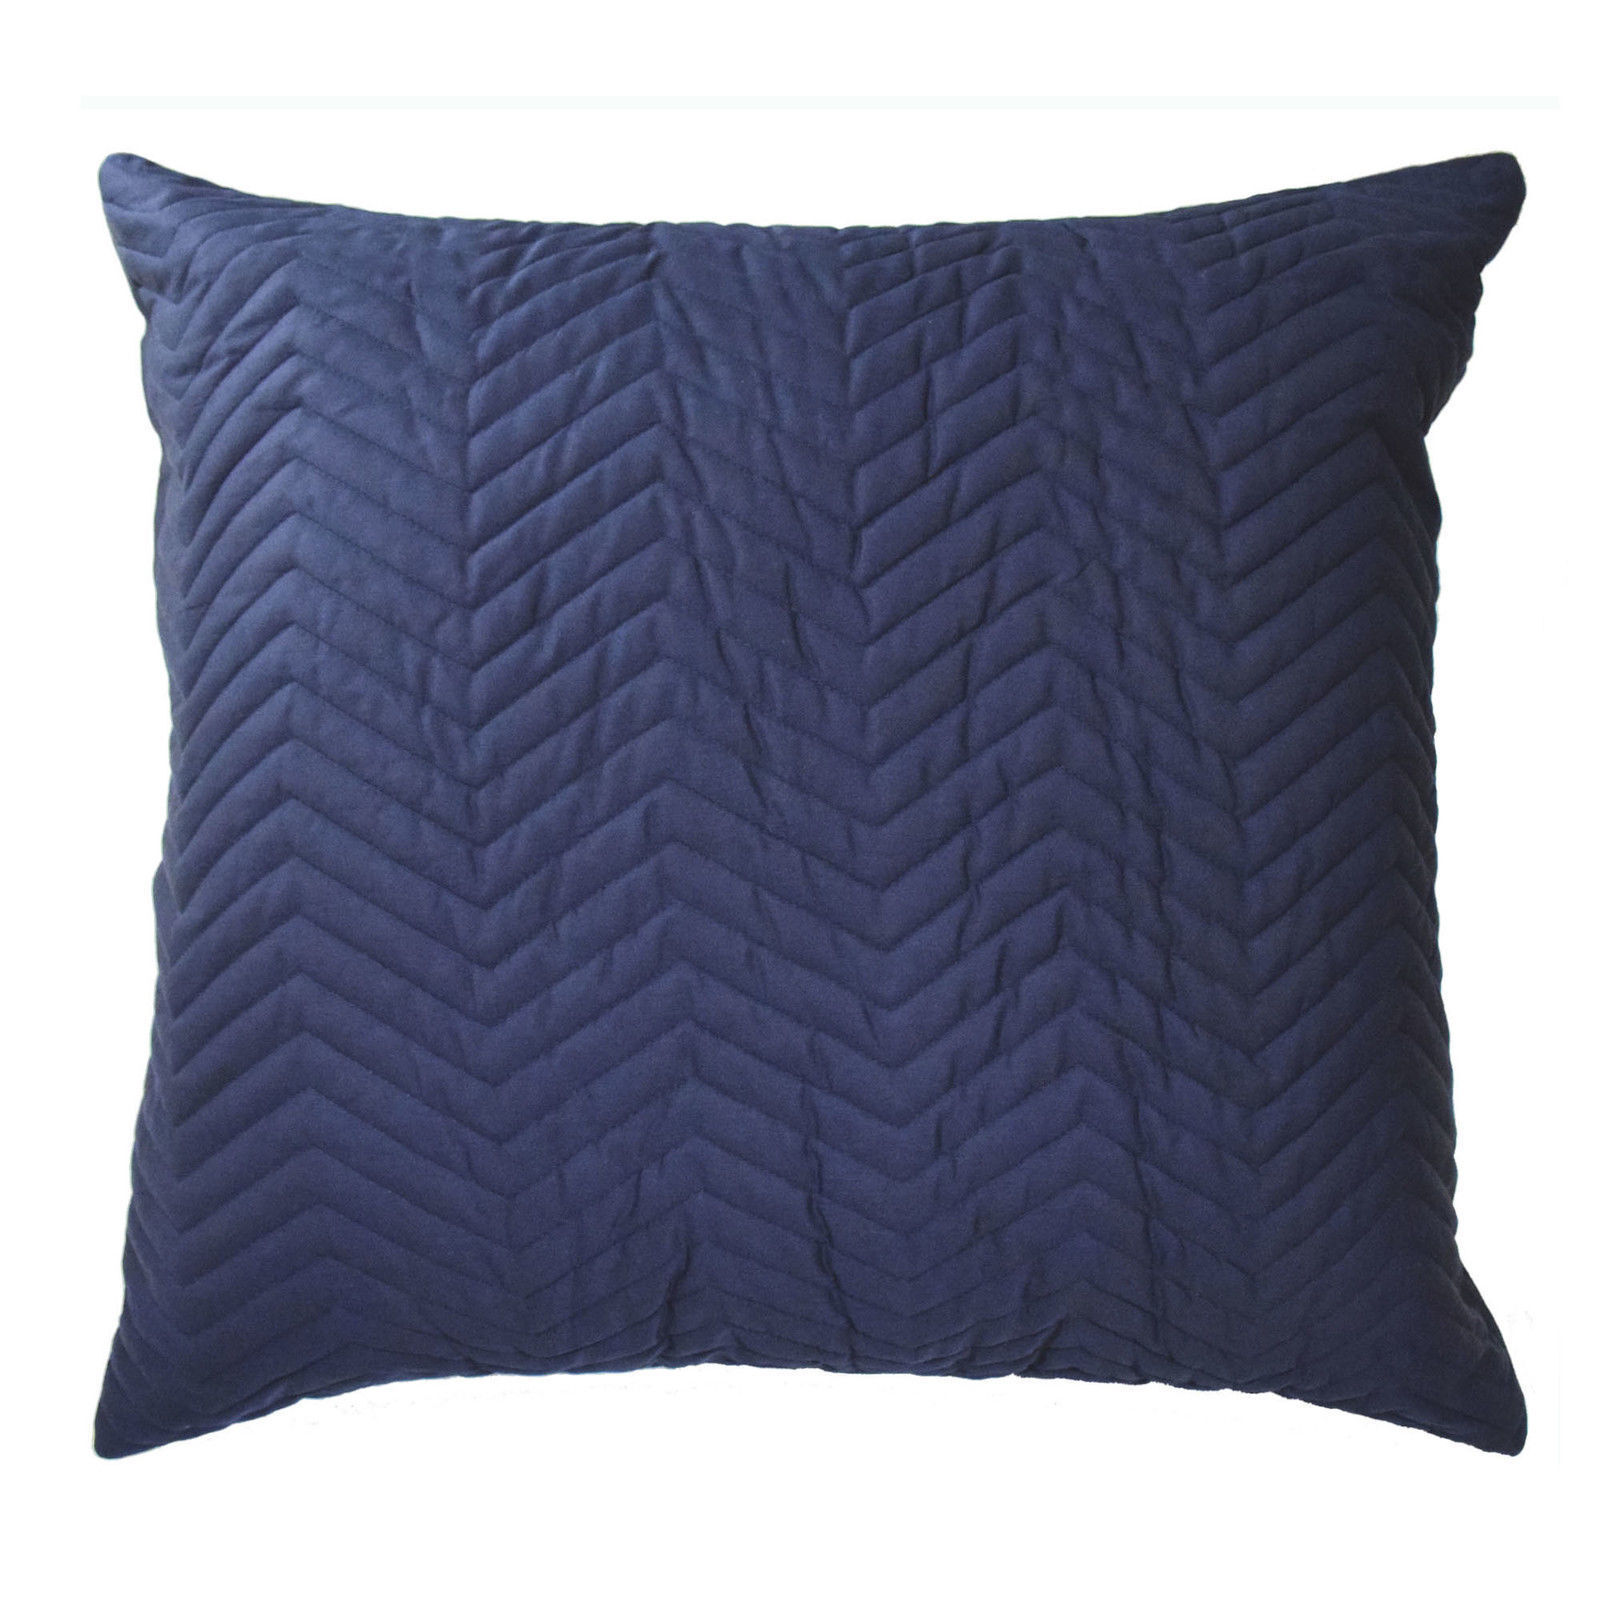 Blissliving Home Mexico City Francisco Quilted Euro Pillow Sham Navy